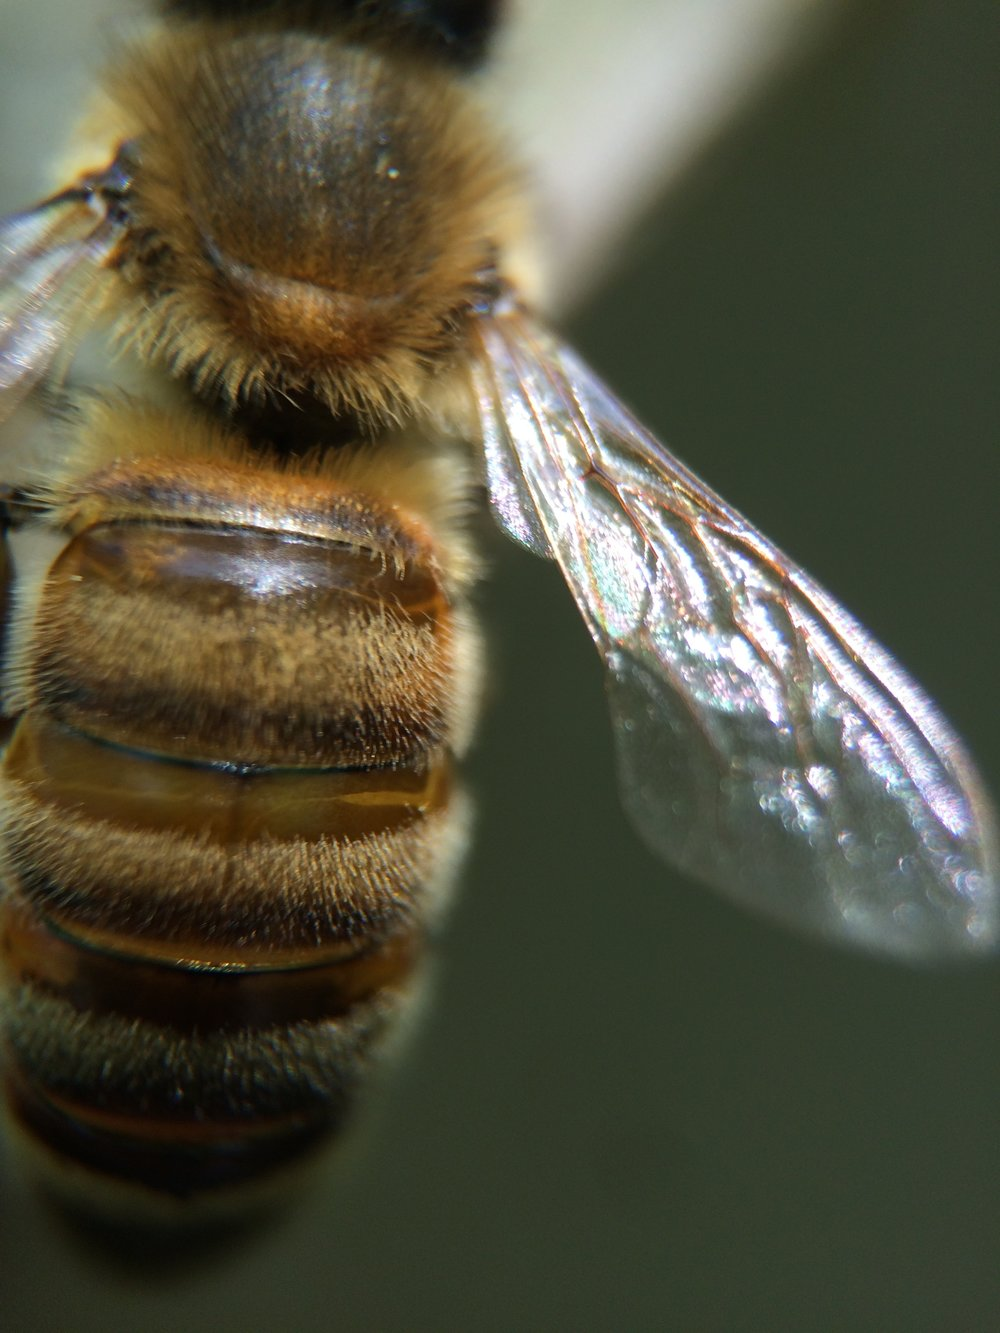 Macro x21 magnification of worker (female) bee.